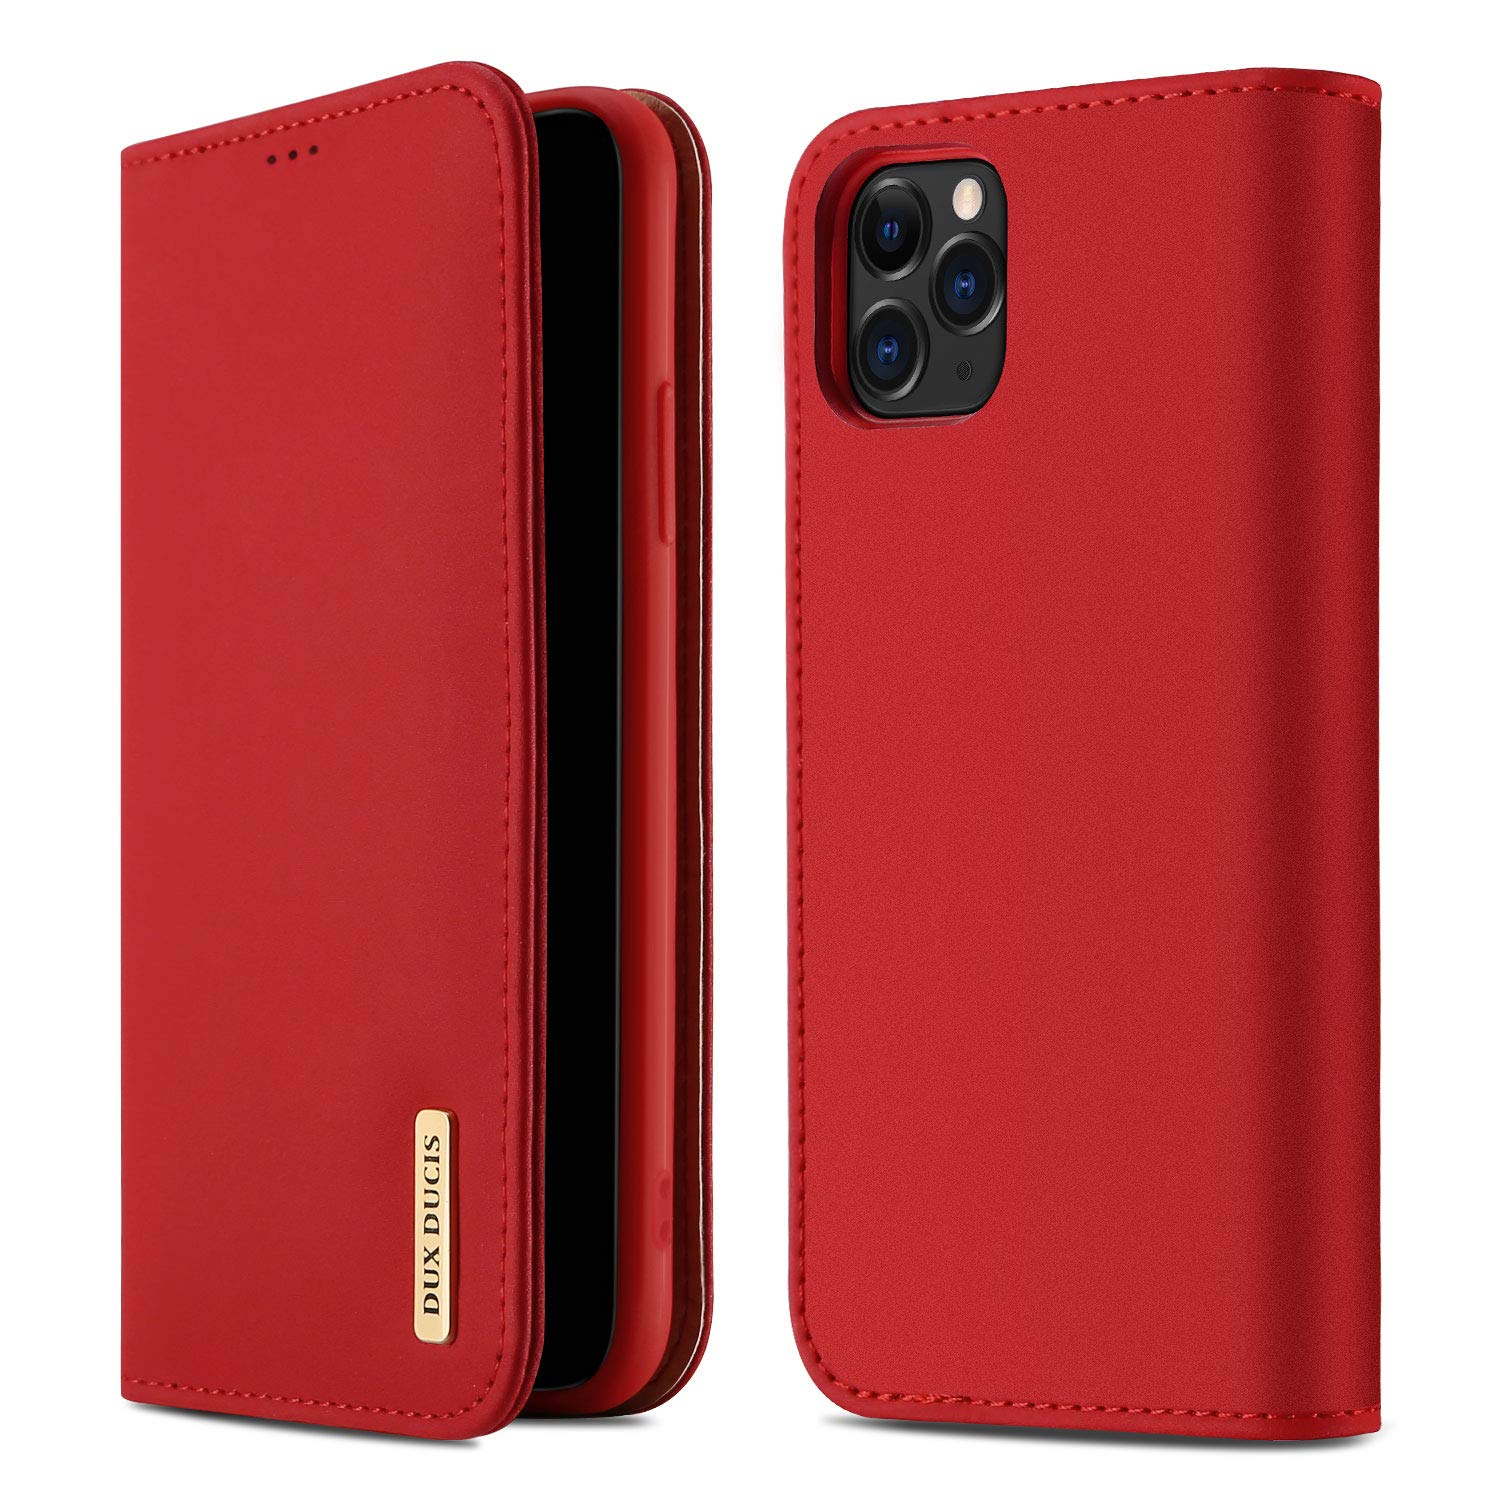 iPhone 11 Pro Wallet Case,DUX DUCIS Genuine Leather Flip Folio Wallet Case with Card Slots, Magnetic Closure,Kickstand Function,Durable Shockproof Cover for iPhone 11 Pro(Red)